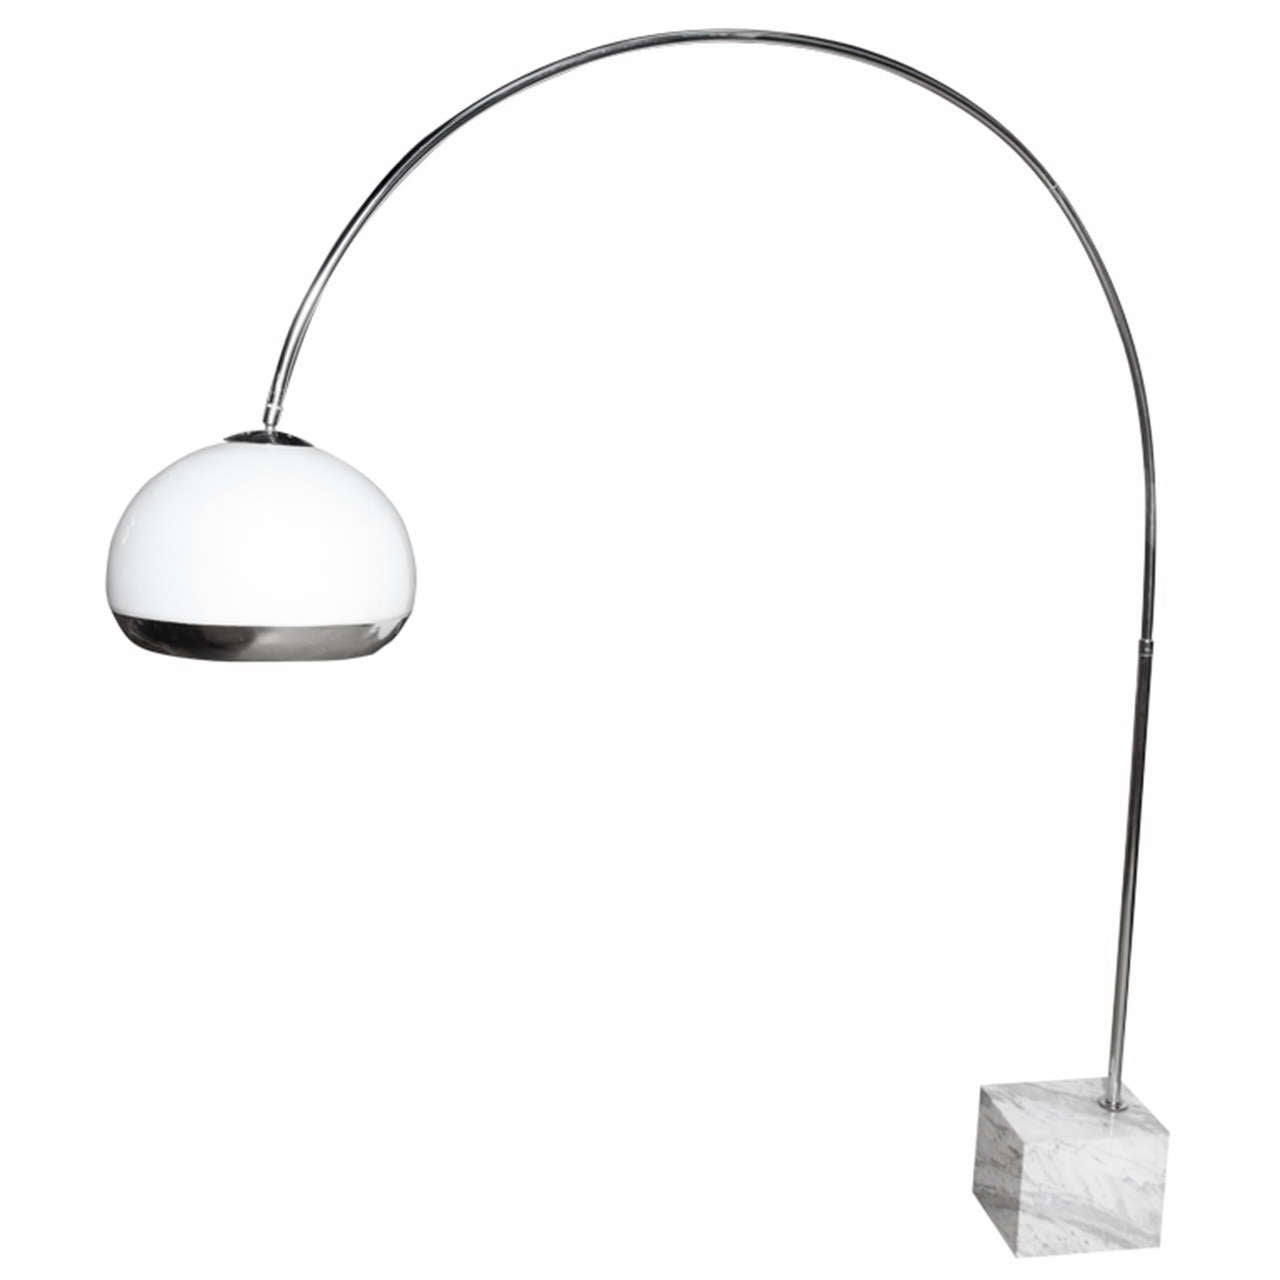 harvey guzzini for laurel lighting co arc floor lamp at stdibs - harvey guzzini for laurel lighting co arc floor lamp